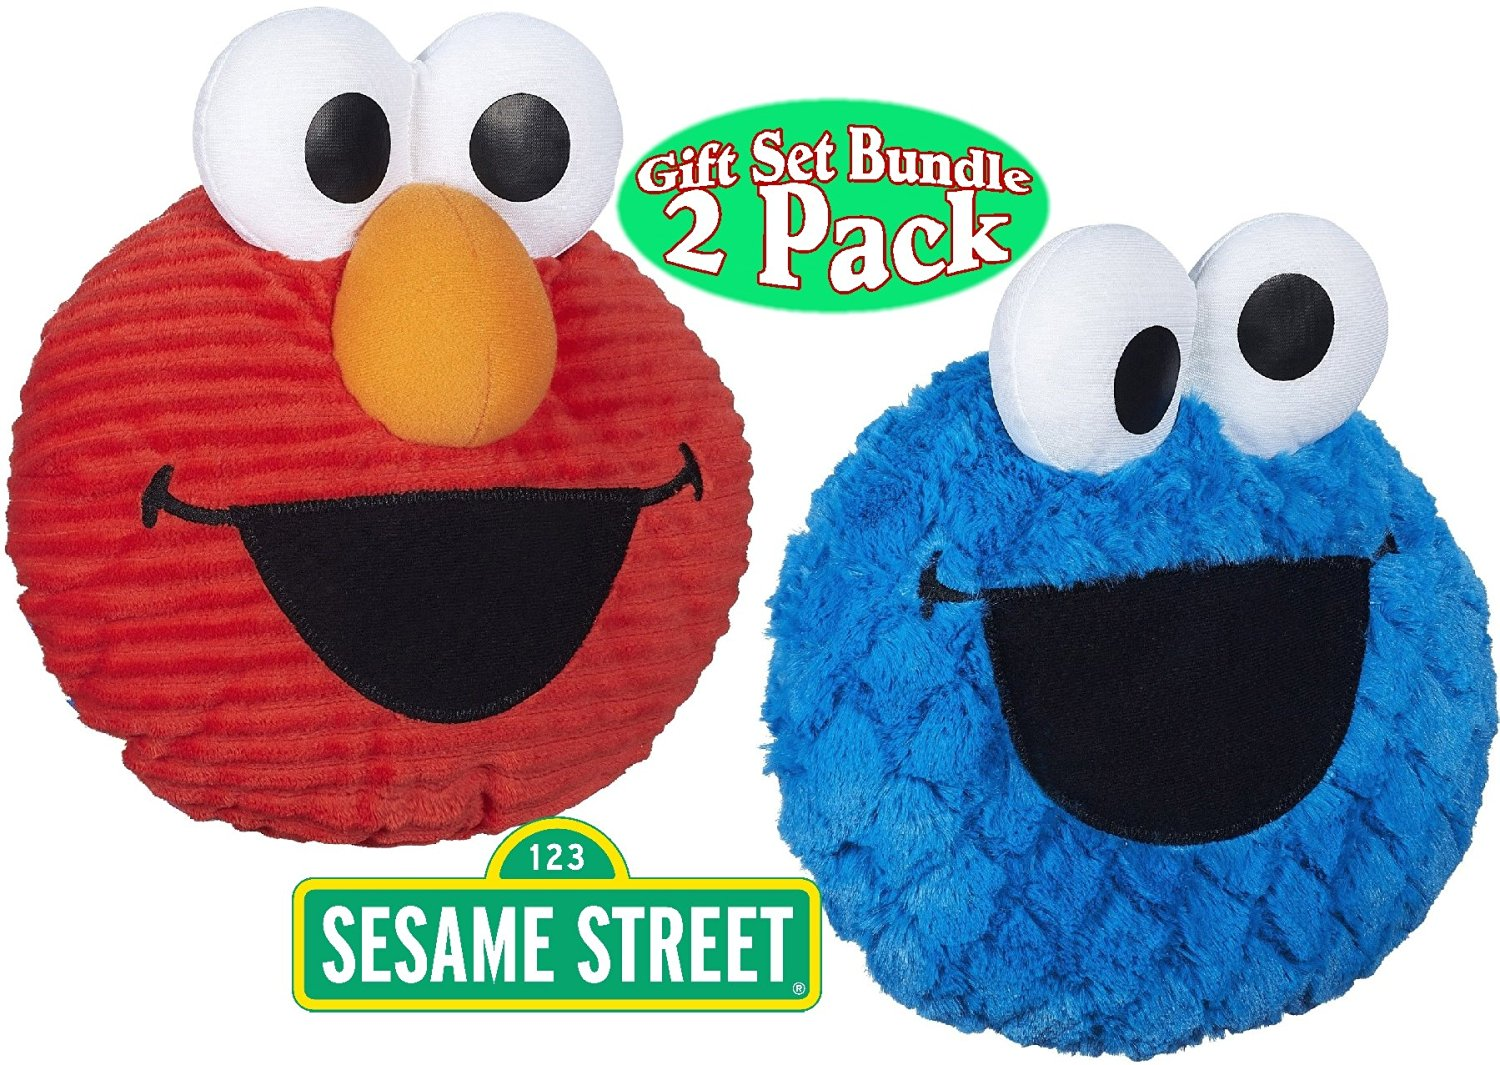 9b44f957fa47 Get Quotations · Playskool Sesame Street Giggle Faces Elmo   Cookie Monster  Gift Set Bundle - 2 Pack